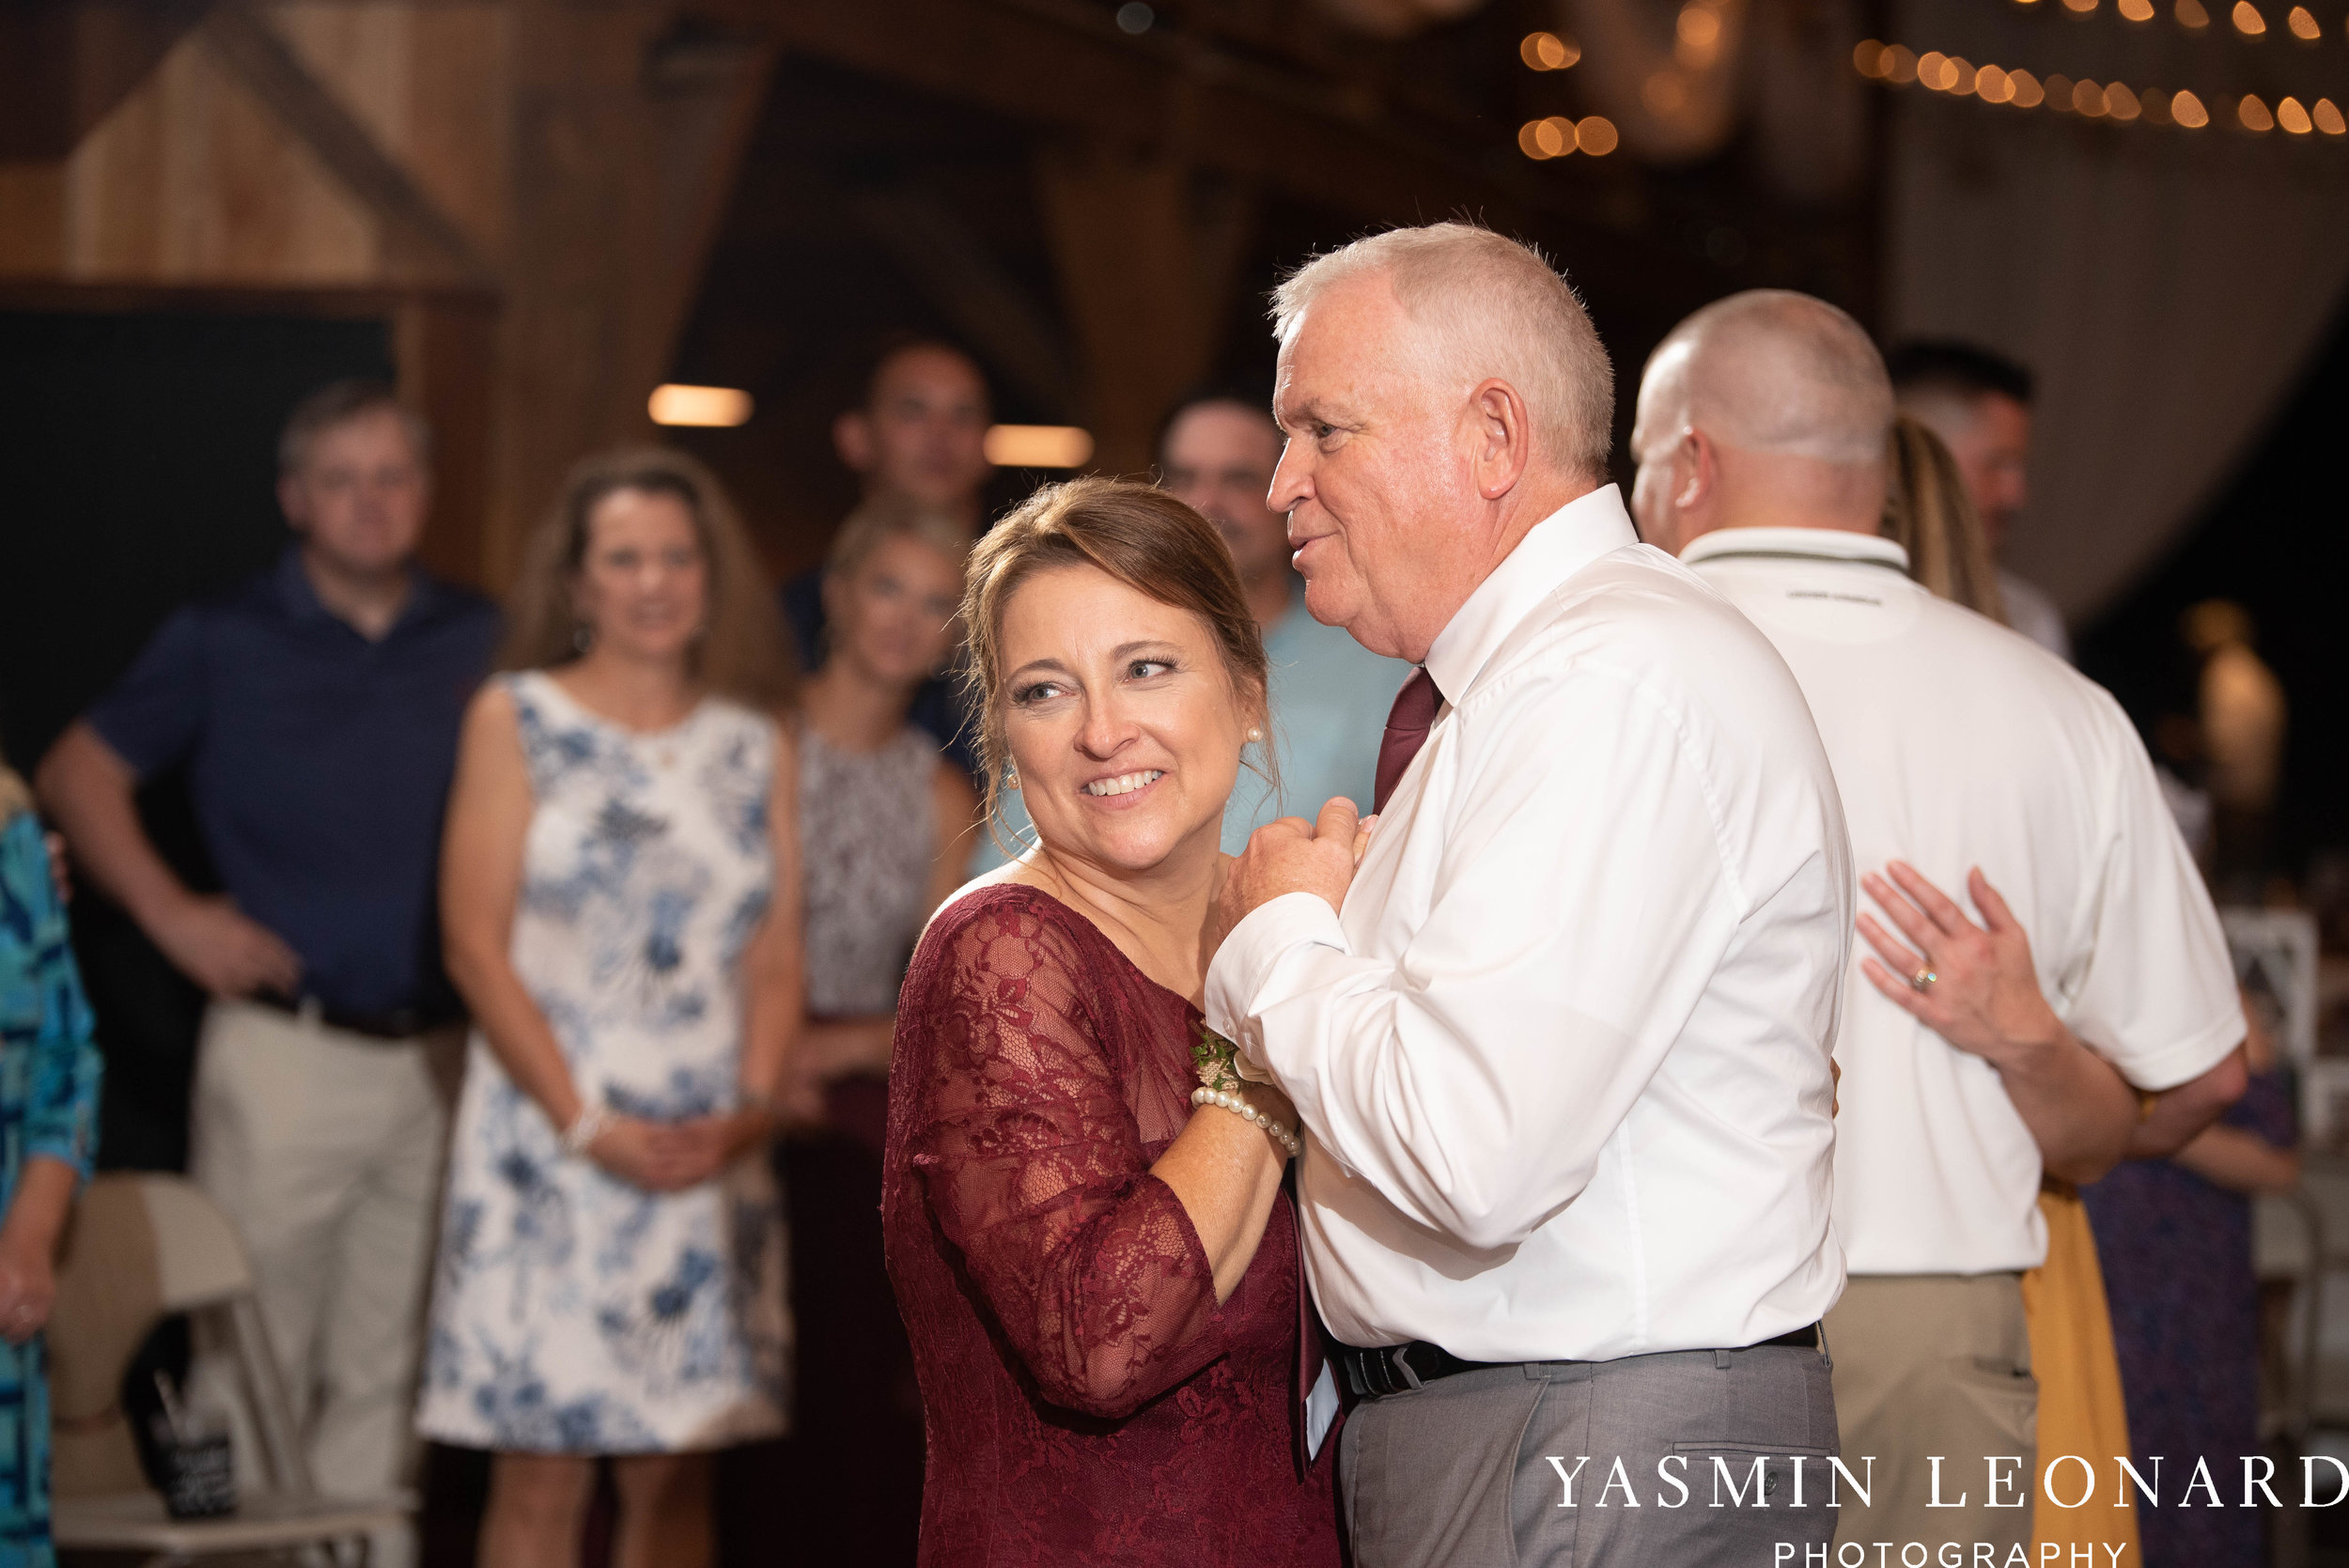 Danner Farms - NC Wedding Venues - NC Barns - Statesville NC - NC Wedding Photographer - High Point Wedding Photographer - Yasmin Leonard Photography-79.jpg